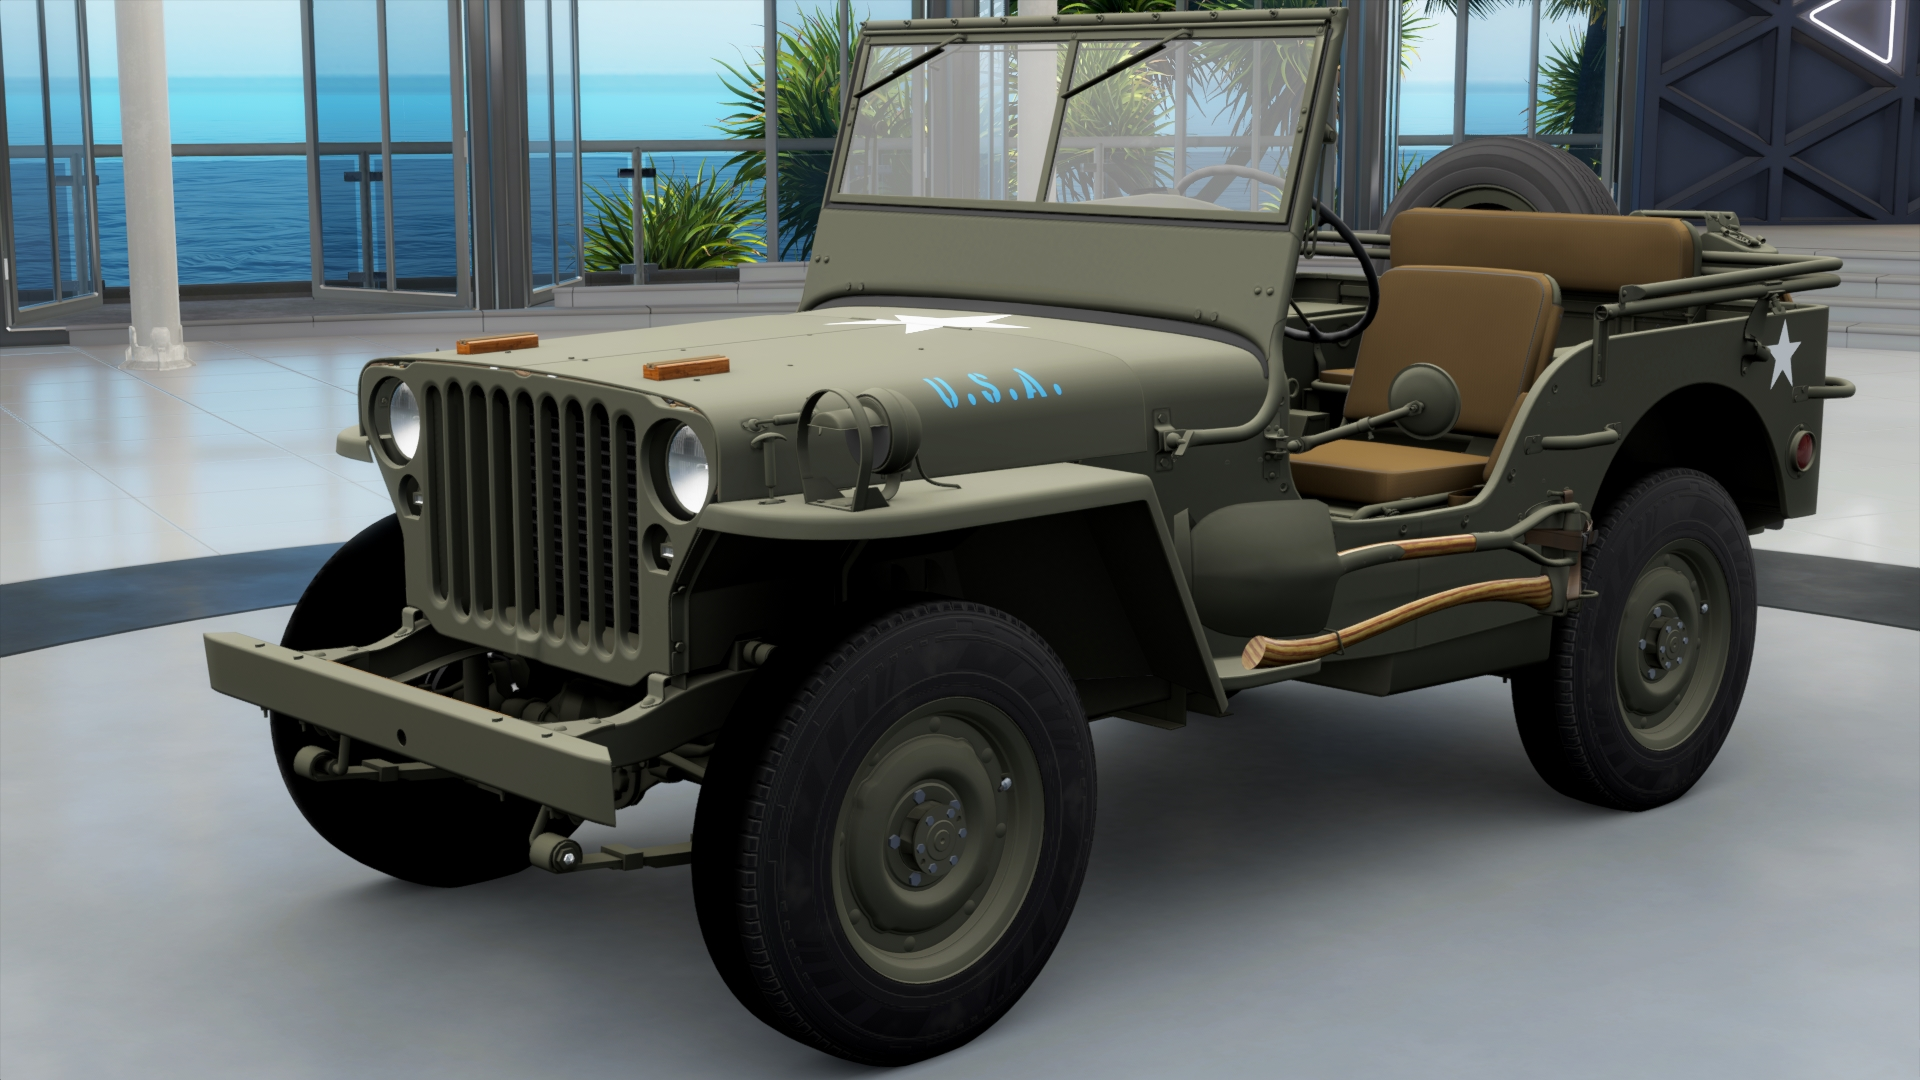 Jeep Wrangler Wiki >> Jeep Willys MB | Forza Motorsport Wiki | FANDOM powered by Wikia